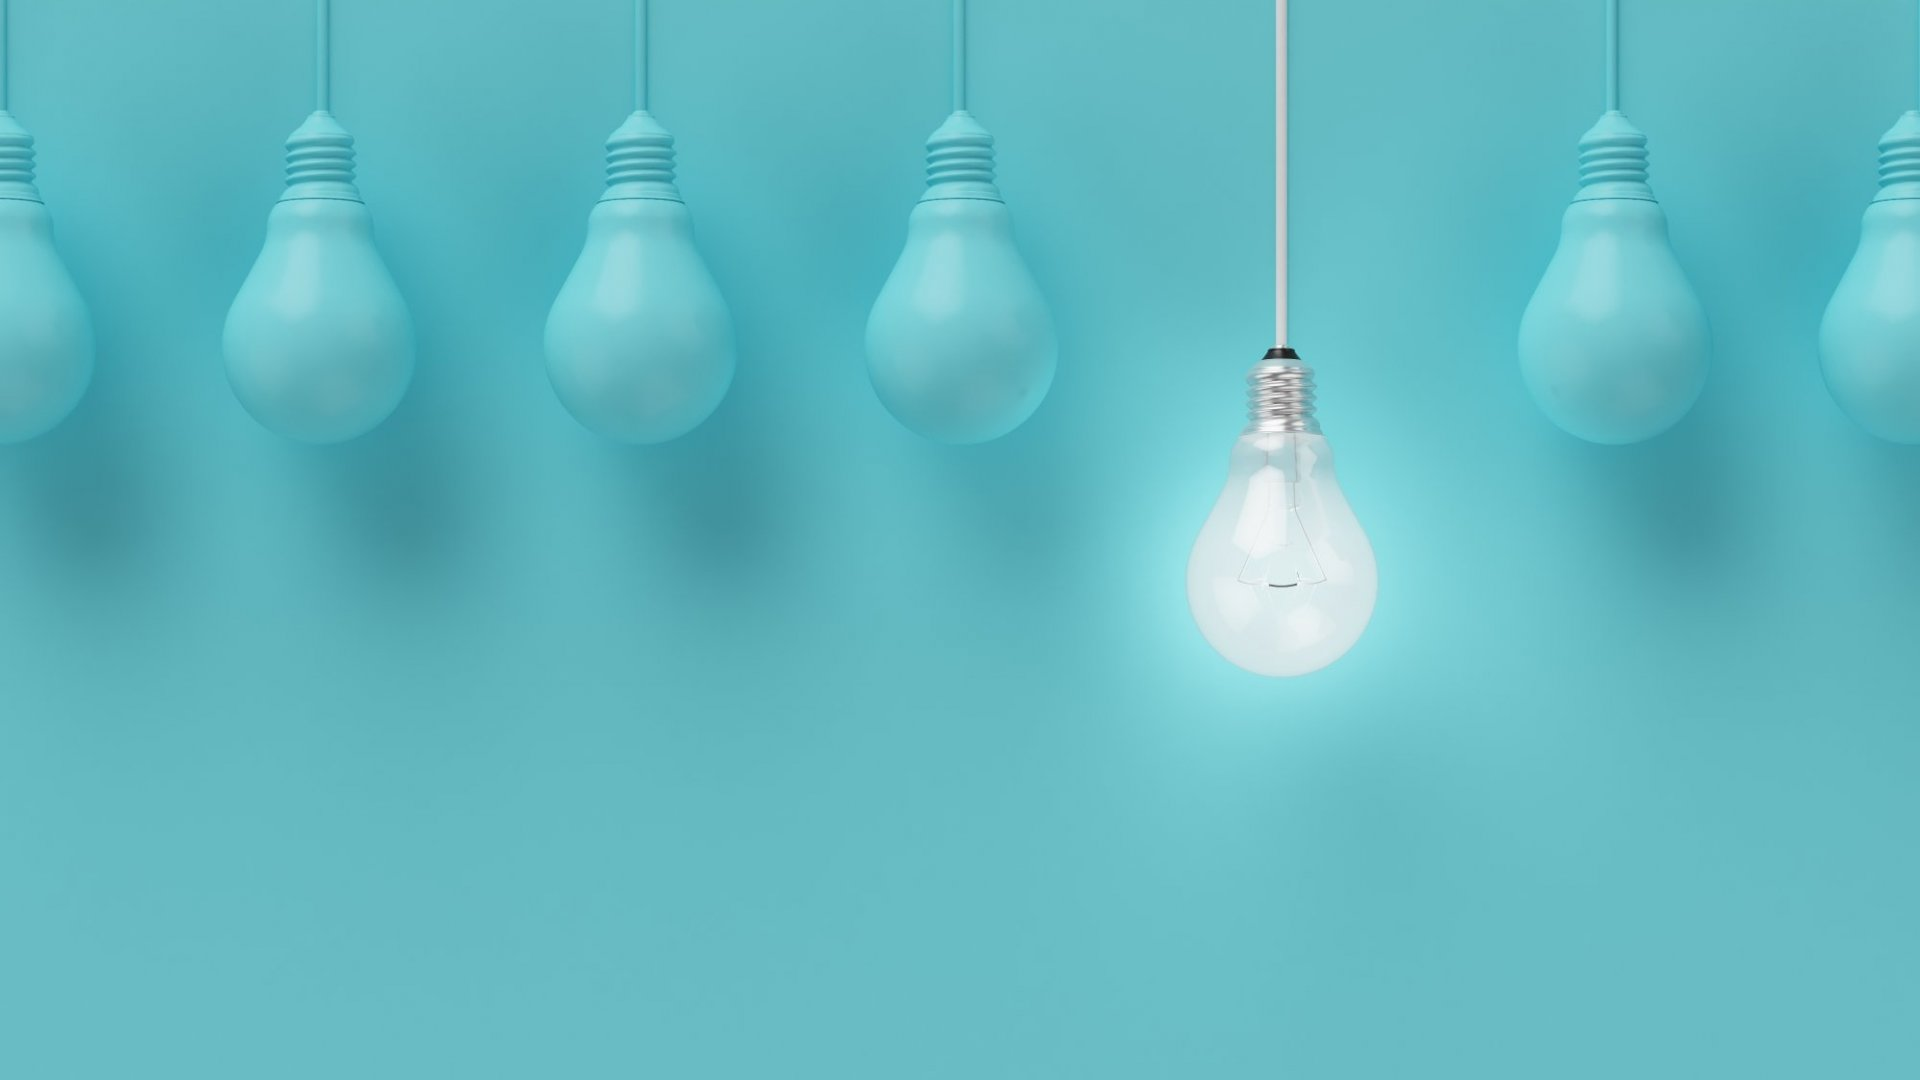 These 3 Marketing Mindsets Are Completely Free and Can Transform Your Company